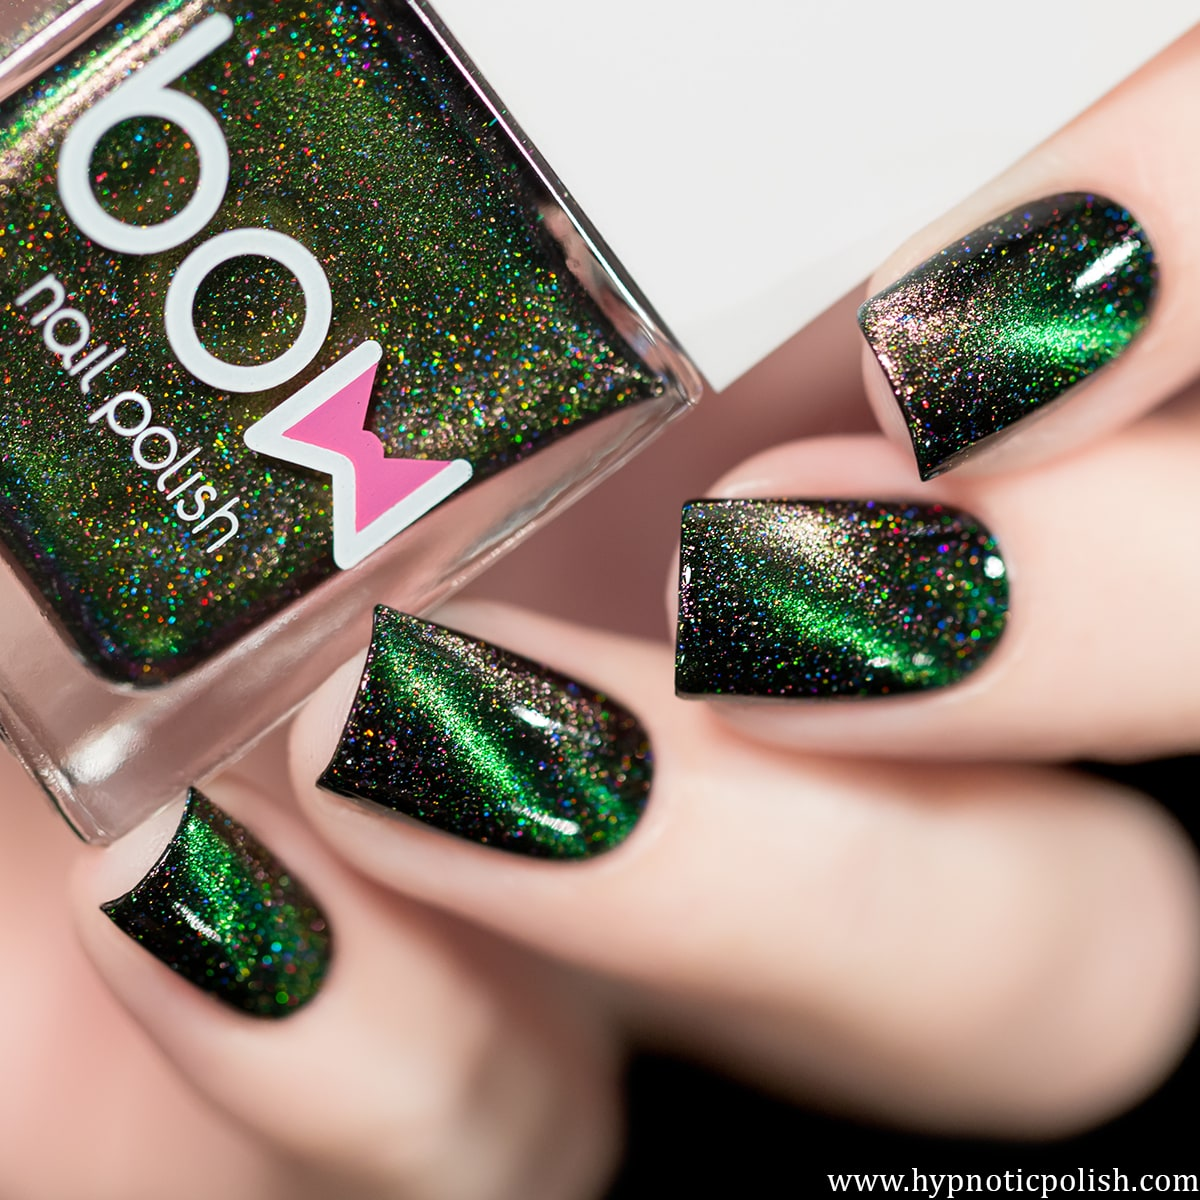 Bow Polish - Magnetic Multichrome (Chameleon) - Astral HOLO